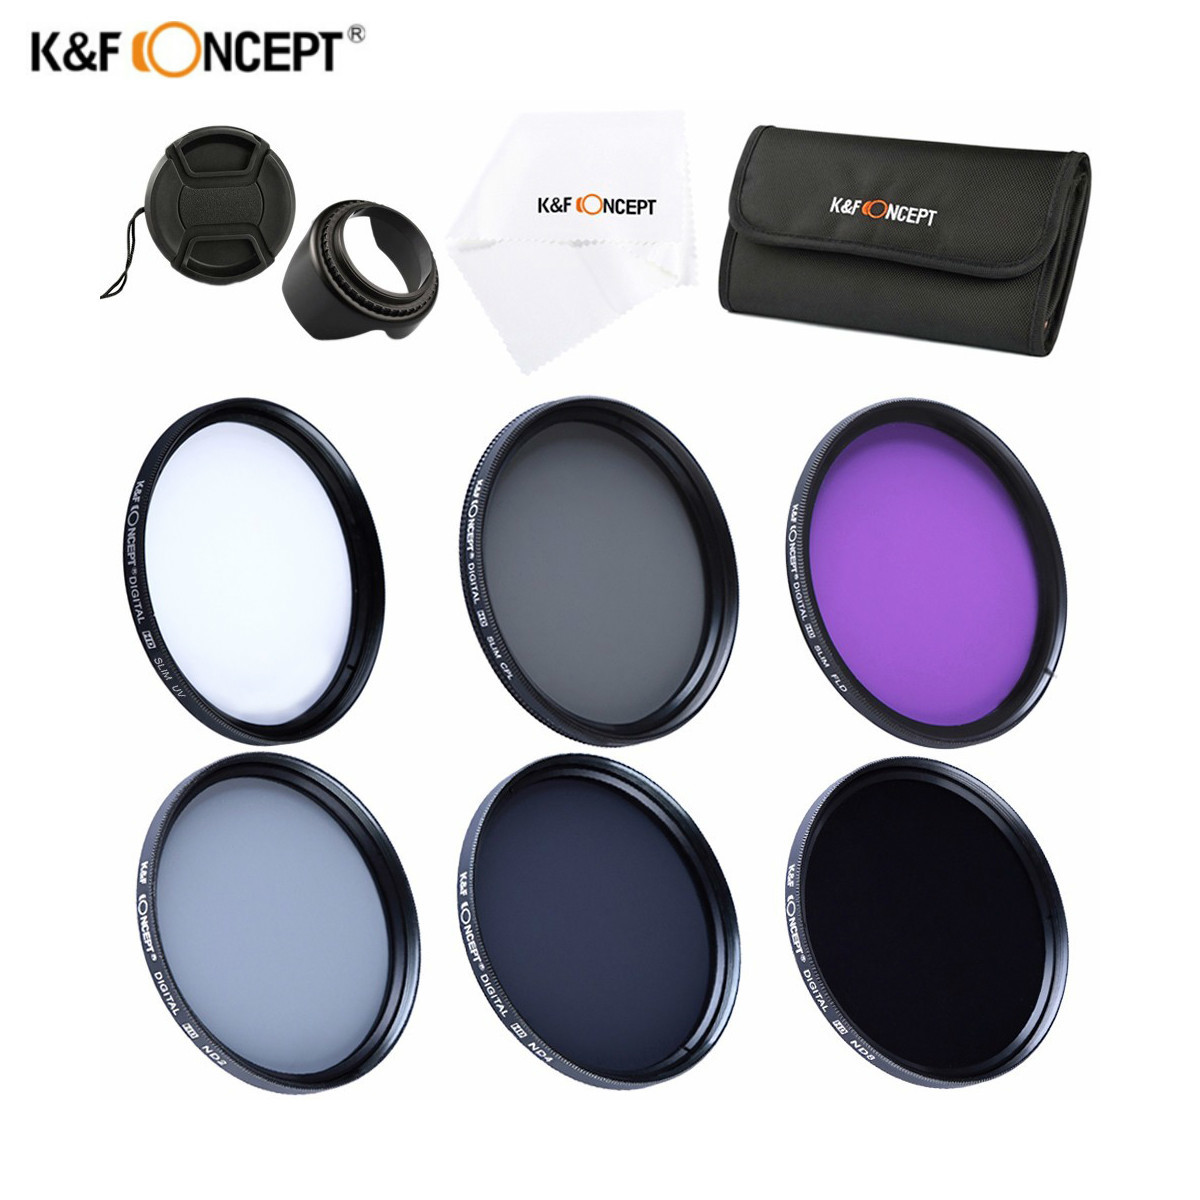 K&F CONCEPT CPL UV FLD ND2 ND4 ND8 Lens Filter Set for Canon Nikon 37MM 40.5MM 49MM 52MM 55MM 58MM 62MM 67MM 72MM 77MM Polarizer светофильтр polaroid uv cpl fld 77mm набор фильтров pl3fil77